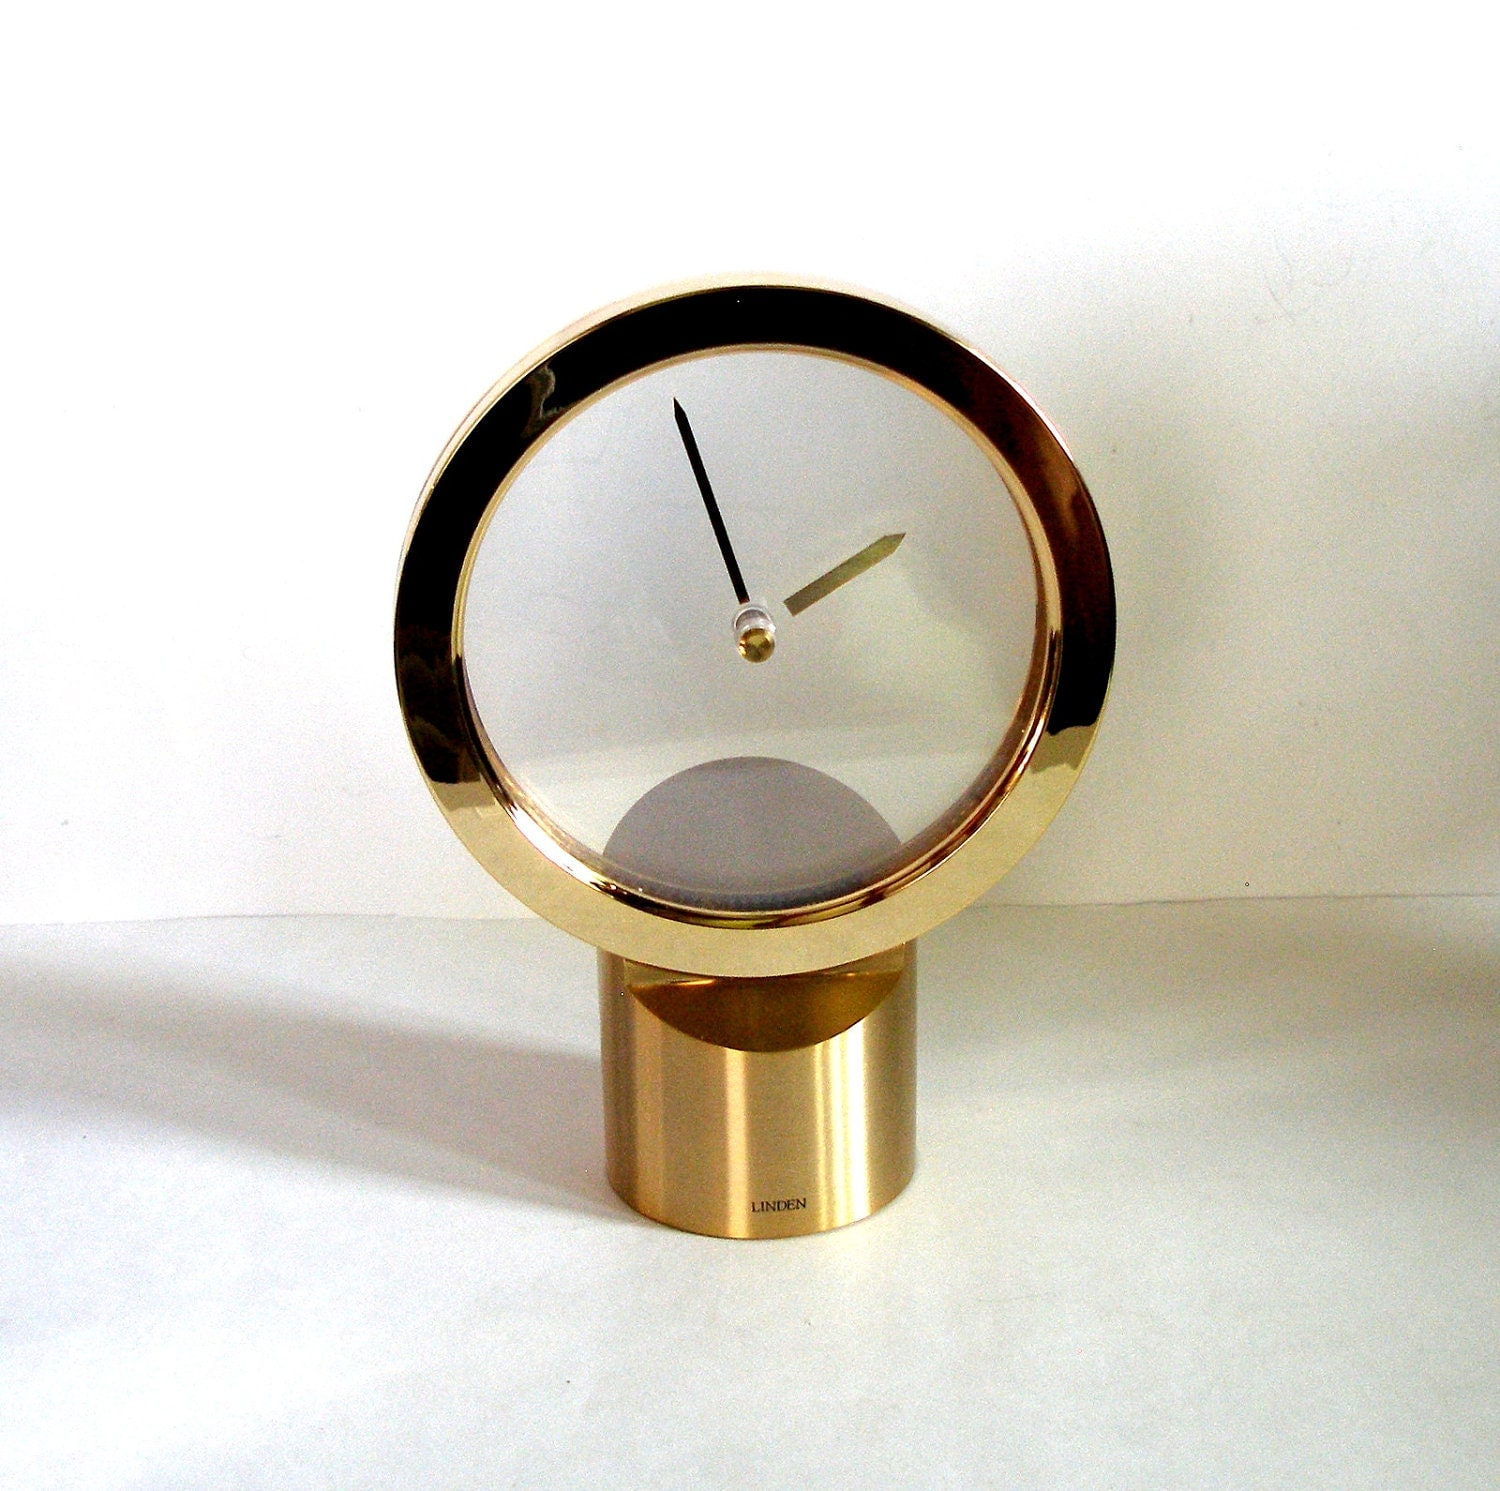 Vintage 1960 S Linden Mystery Clock With Floating Hands